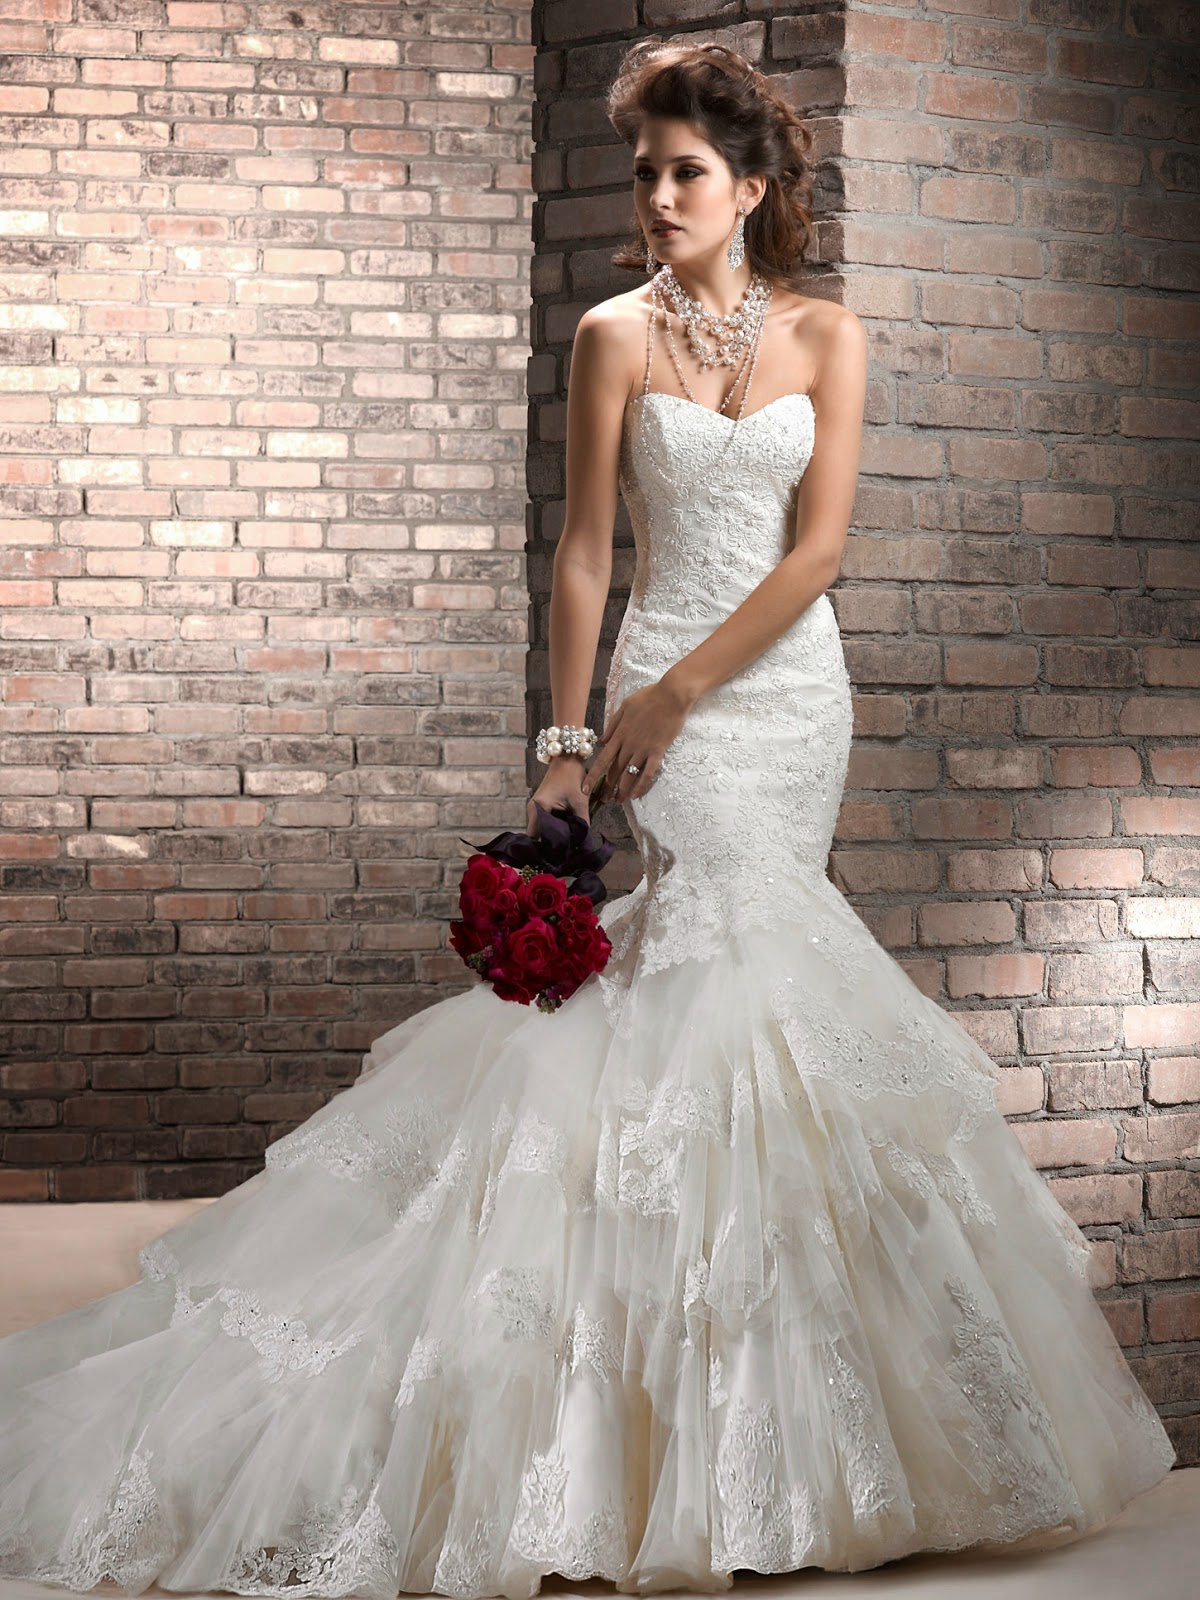 Trumpet style wedding dresses unique wedding ideas trumpet style wedding dresses junglespirit Image collections